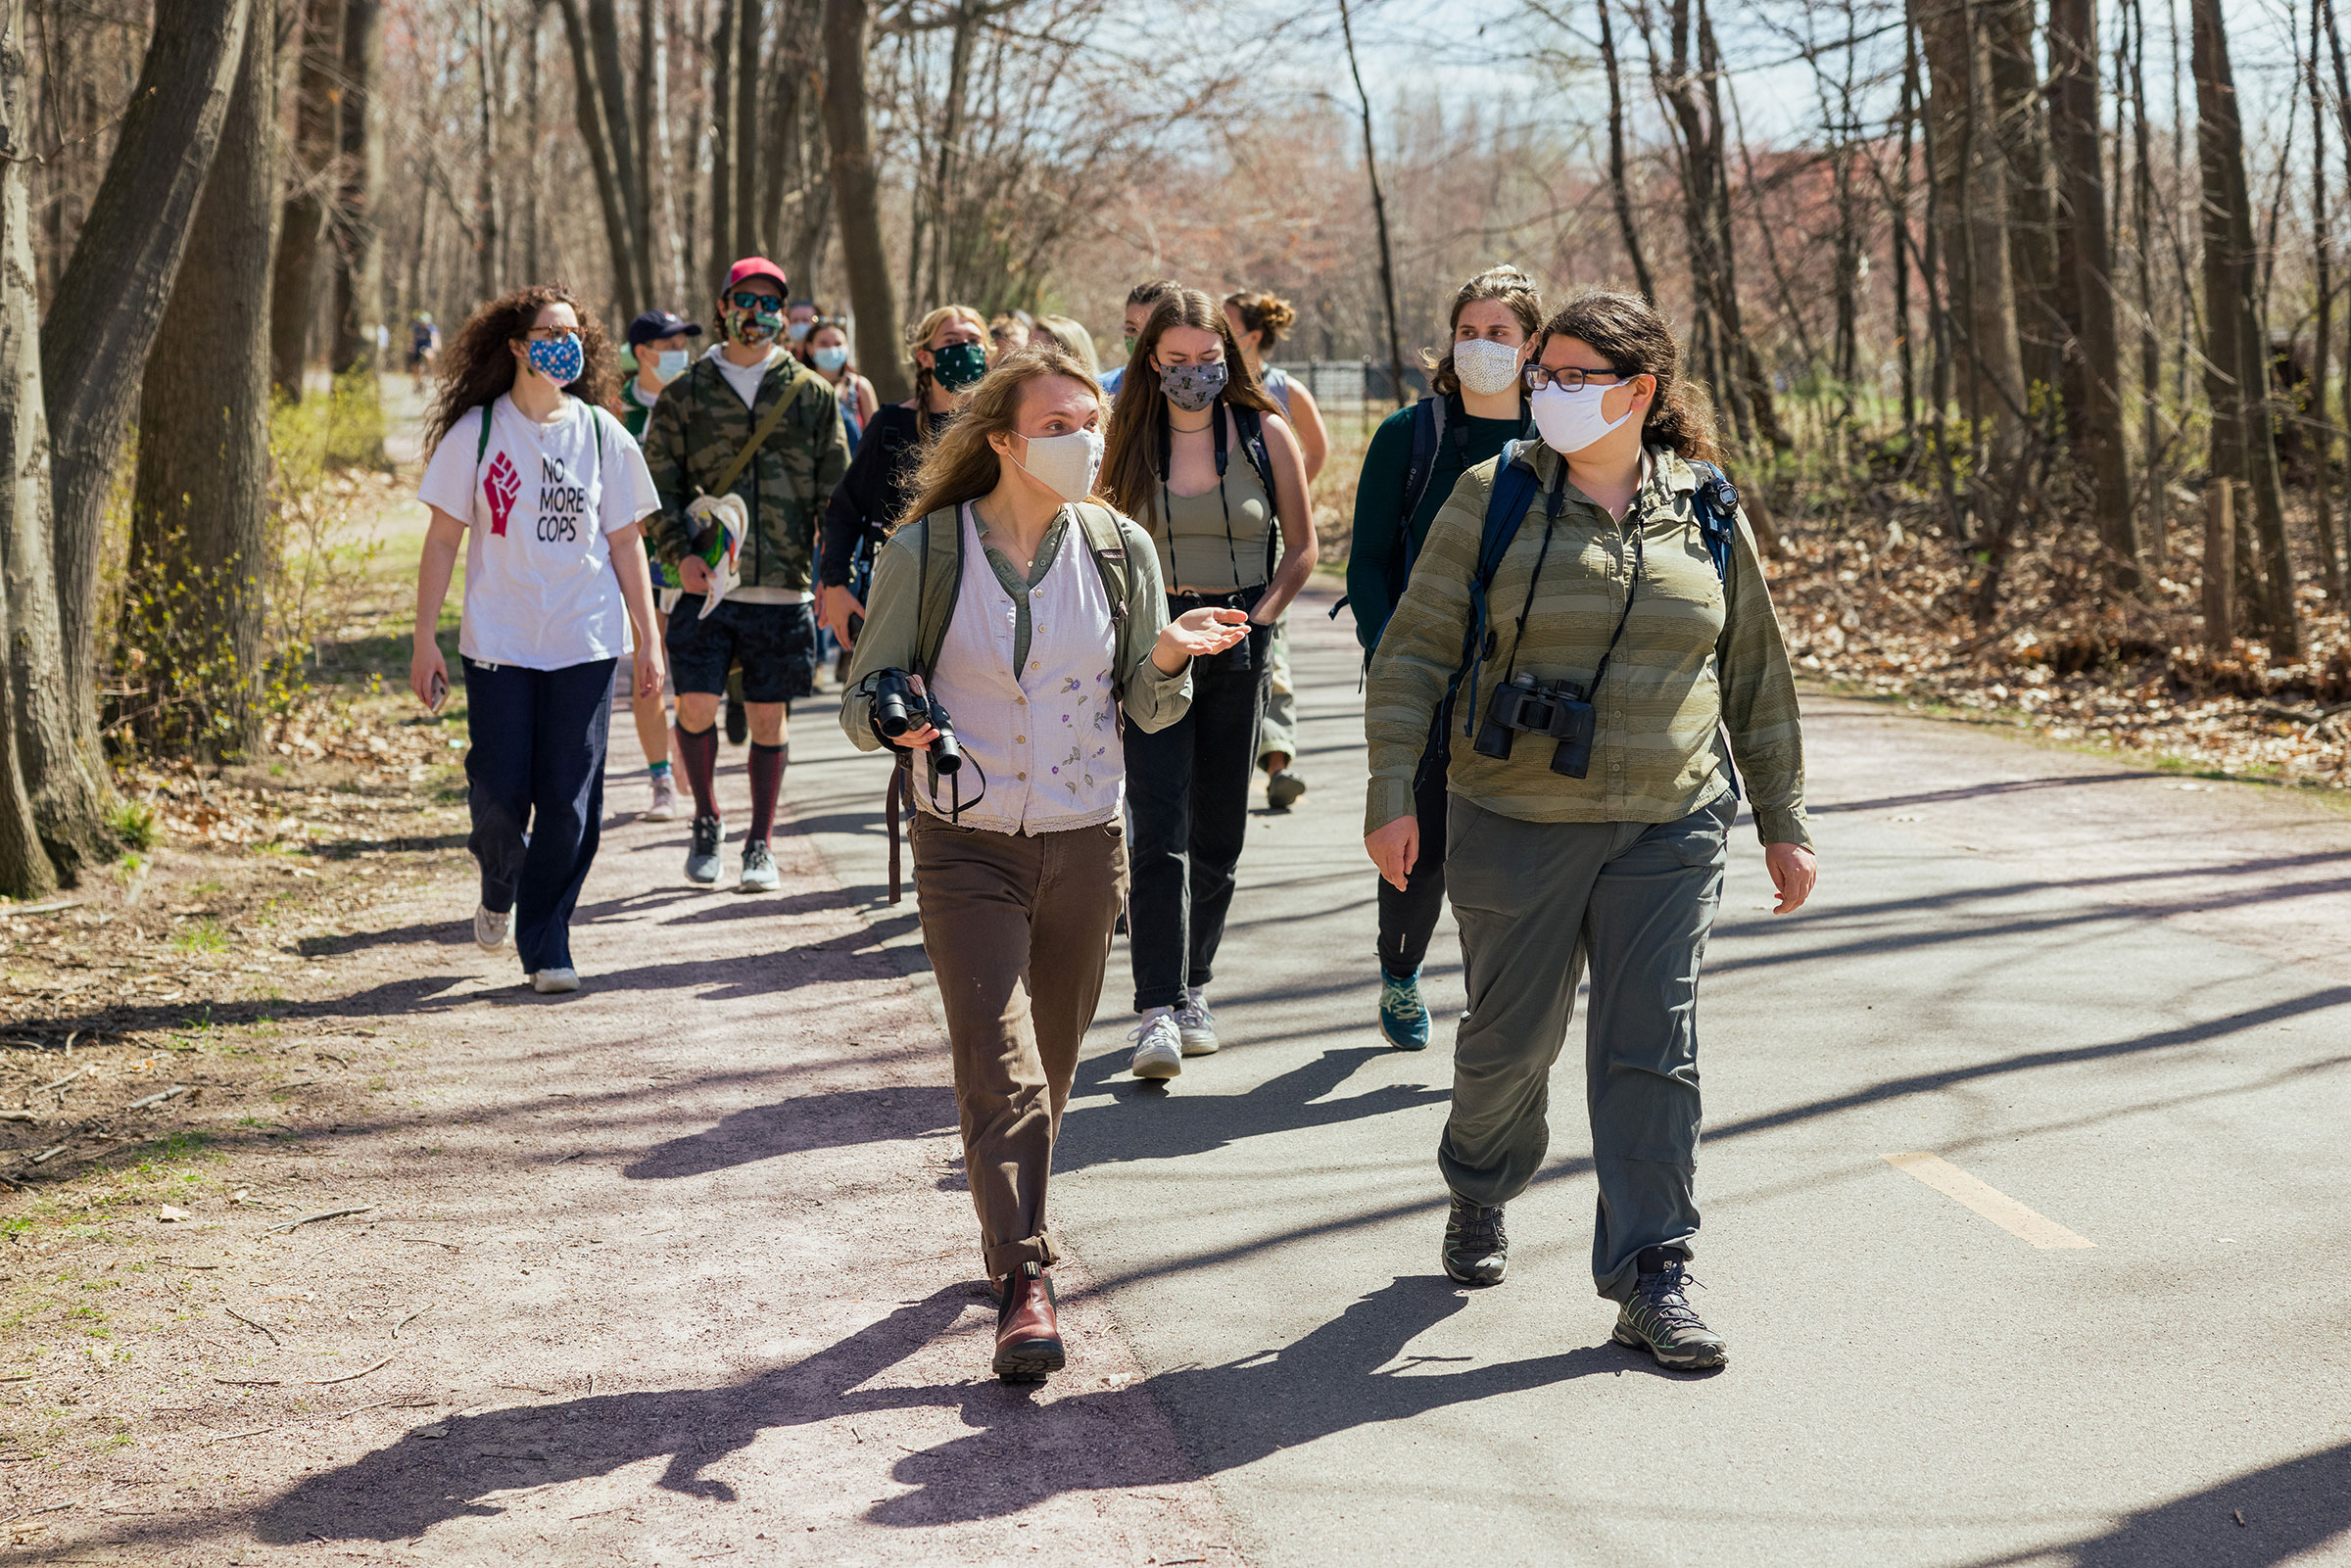 Around one dozen University of Vermont college students wearing face masks and binoculars around their necks walk down a road lined with brown trees during an outdoor class in Spring 2021.